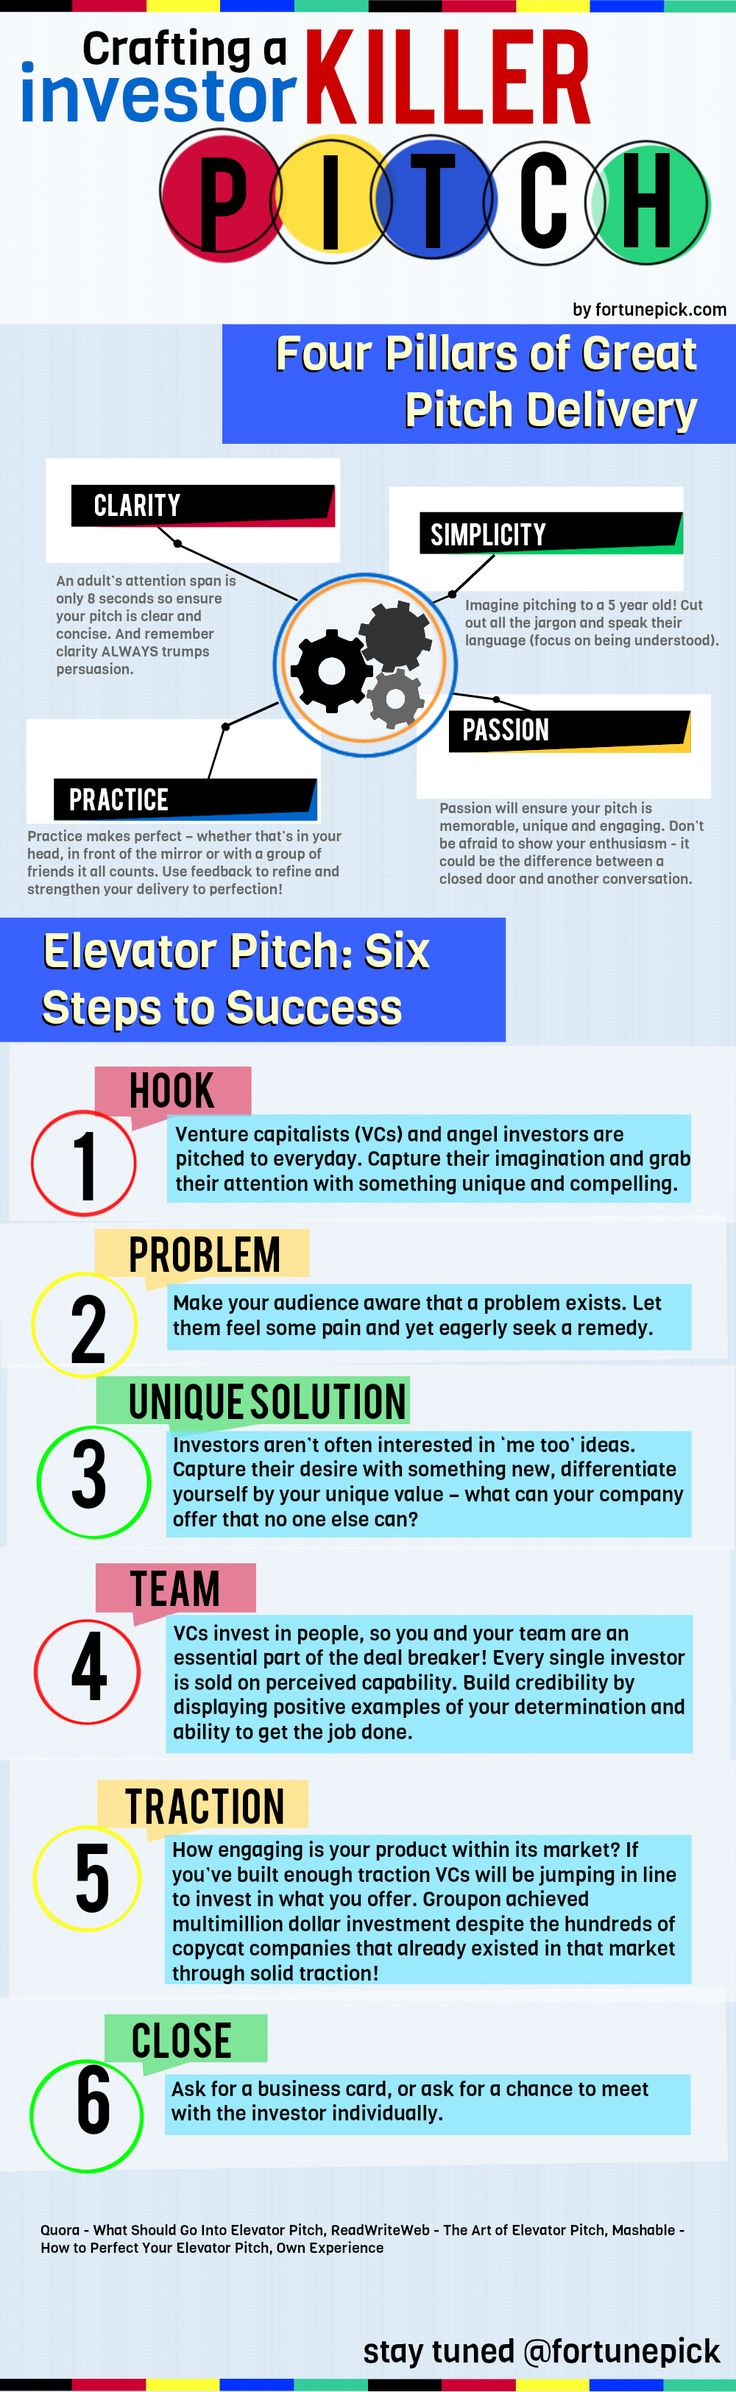 How To Craft a Winning Startup Pitch [INFOGRAPHIC]